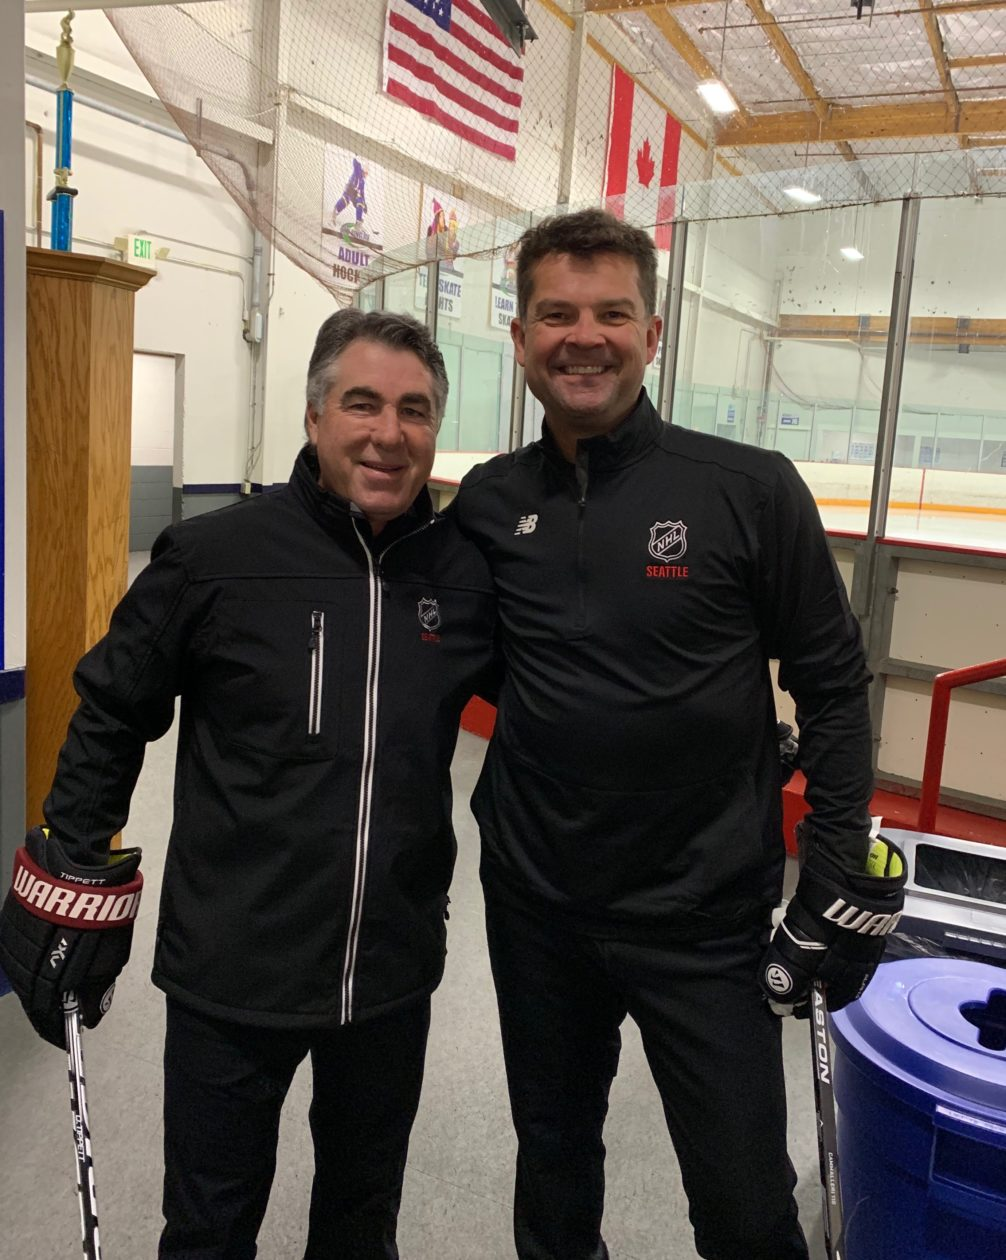 Startup tech exec and former pro hockey player joins new Seattle NHL  franchise to lead tech efforts b29f8897f